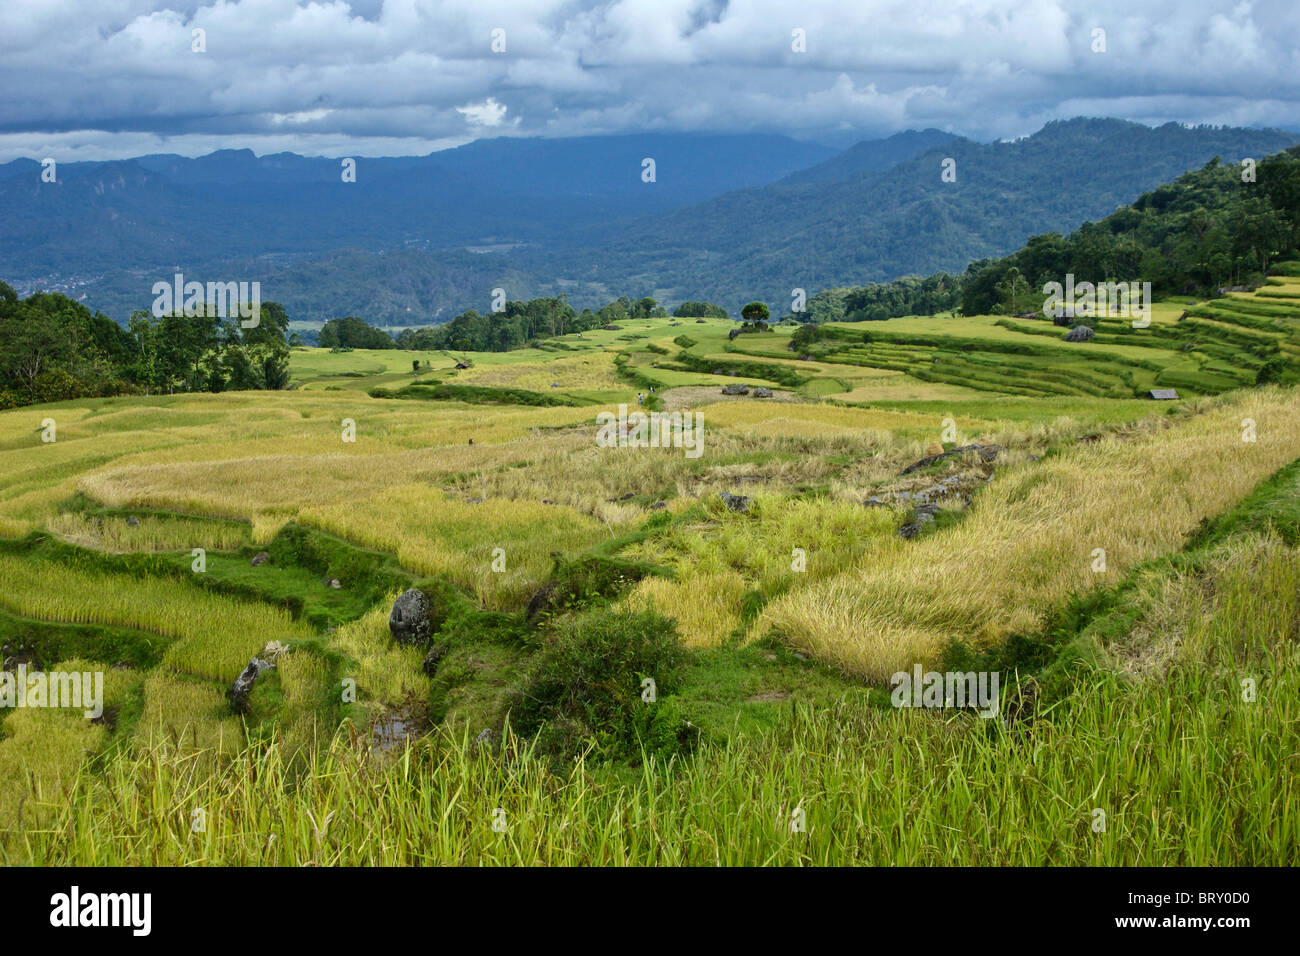 Rice terraces, Tana Toraja, South Sulawesi, Indonesia - Stock Image